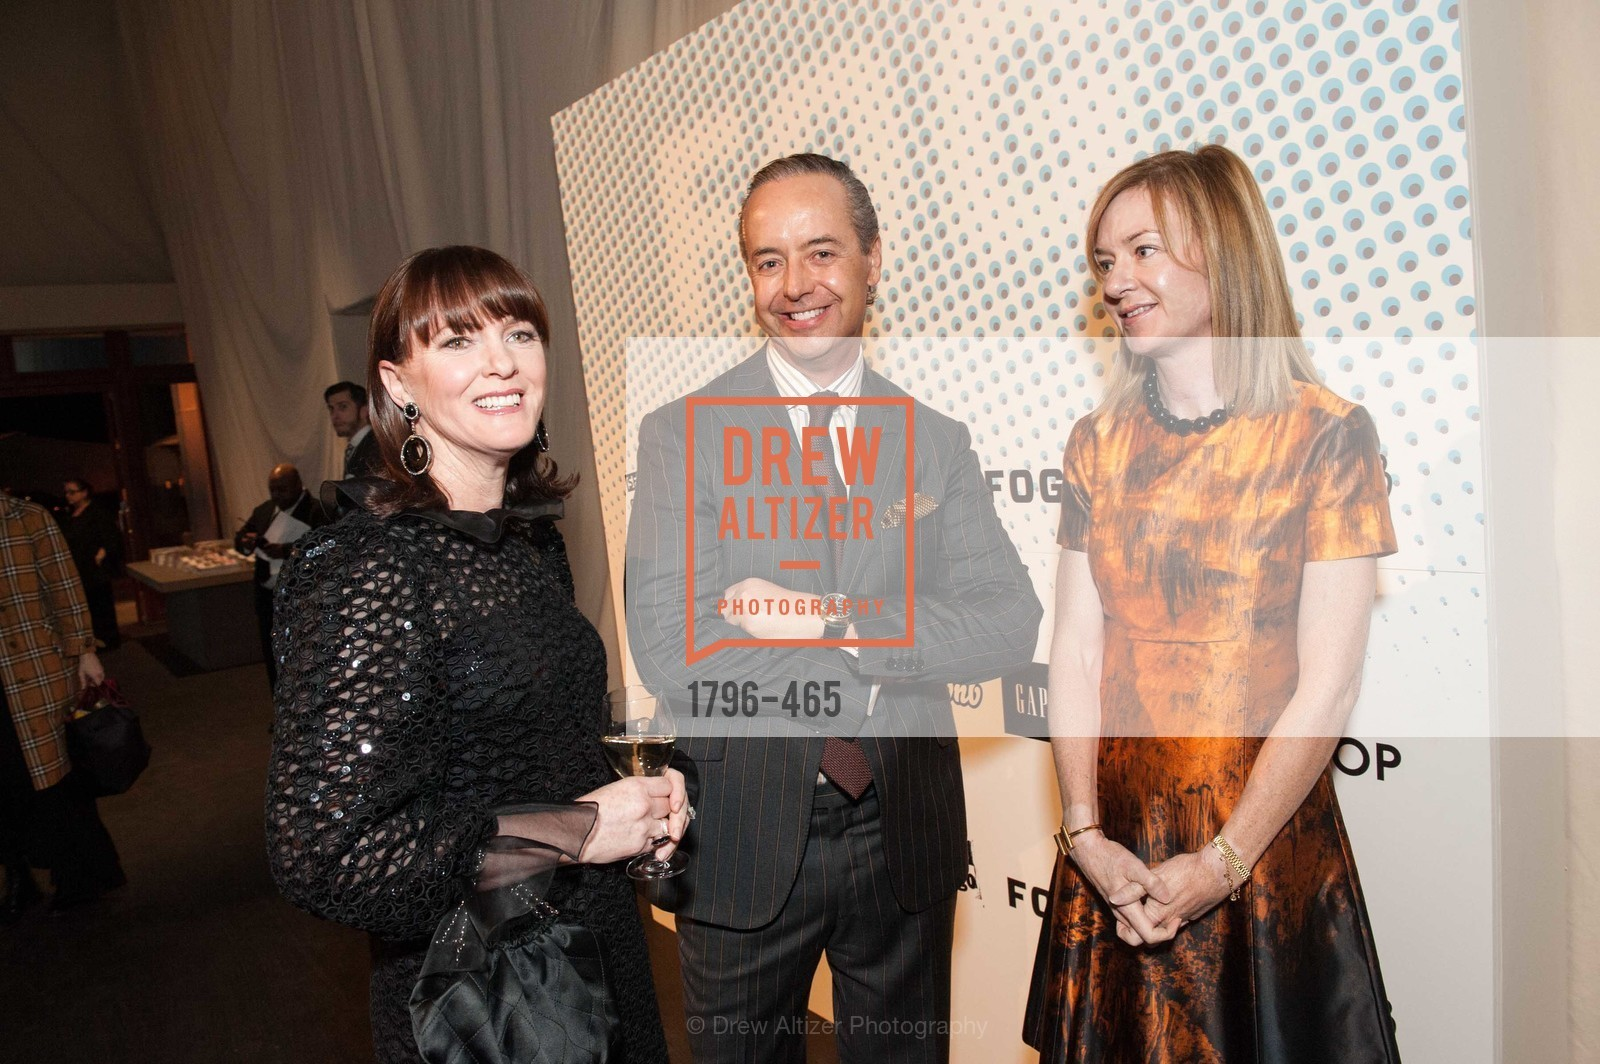 Allison Speer, Douglas Durkin, Katie Schwab Paige, FOG Design + Art Preview Gala, US. US, January 16th, 2014,Drew Altizer, Drew Altizer Photography, full-service agency, private events, San Francisco photographer, photographer california